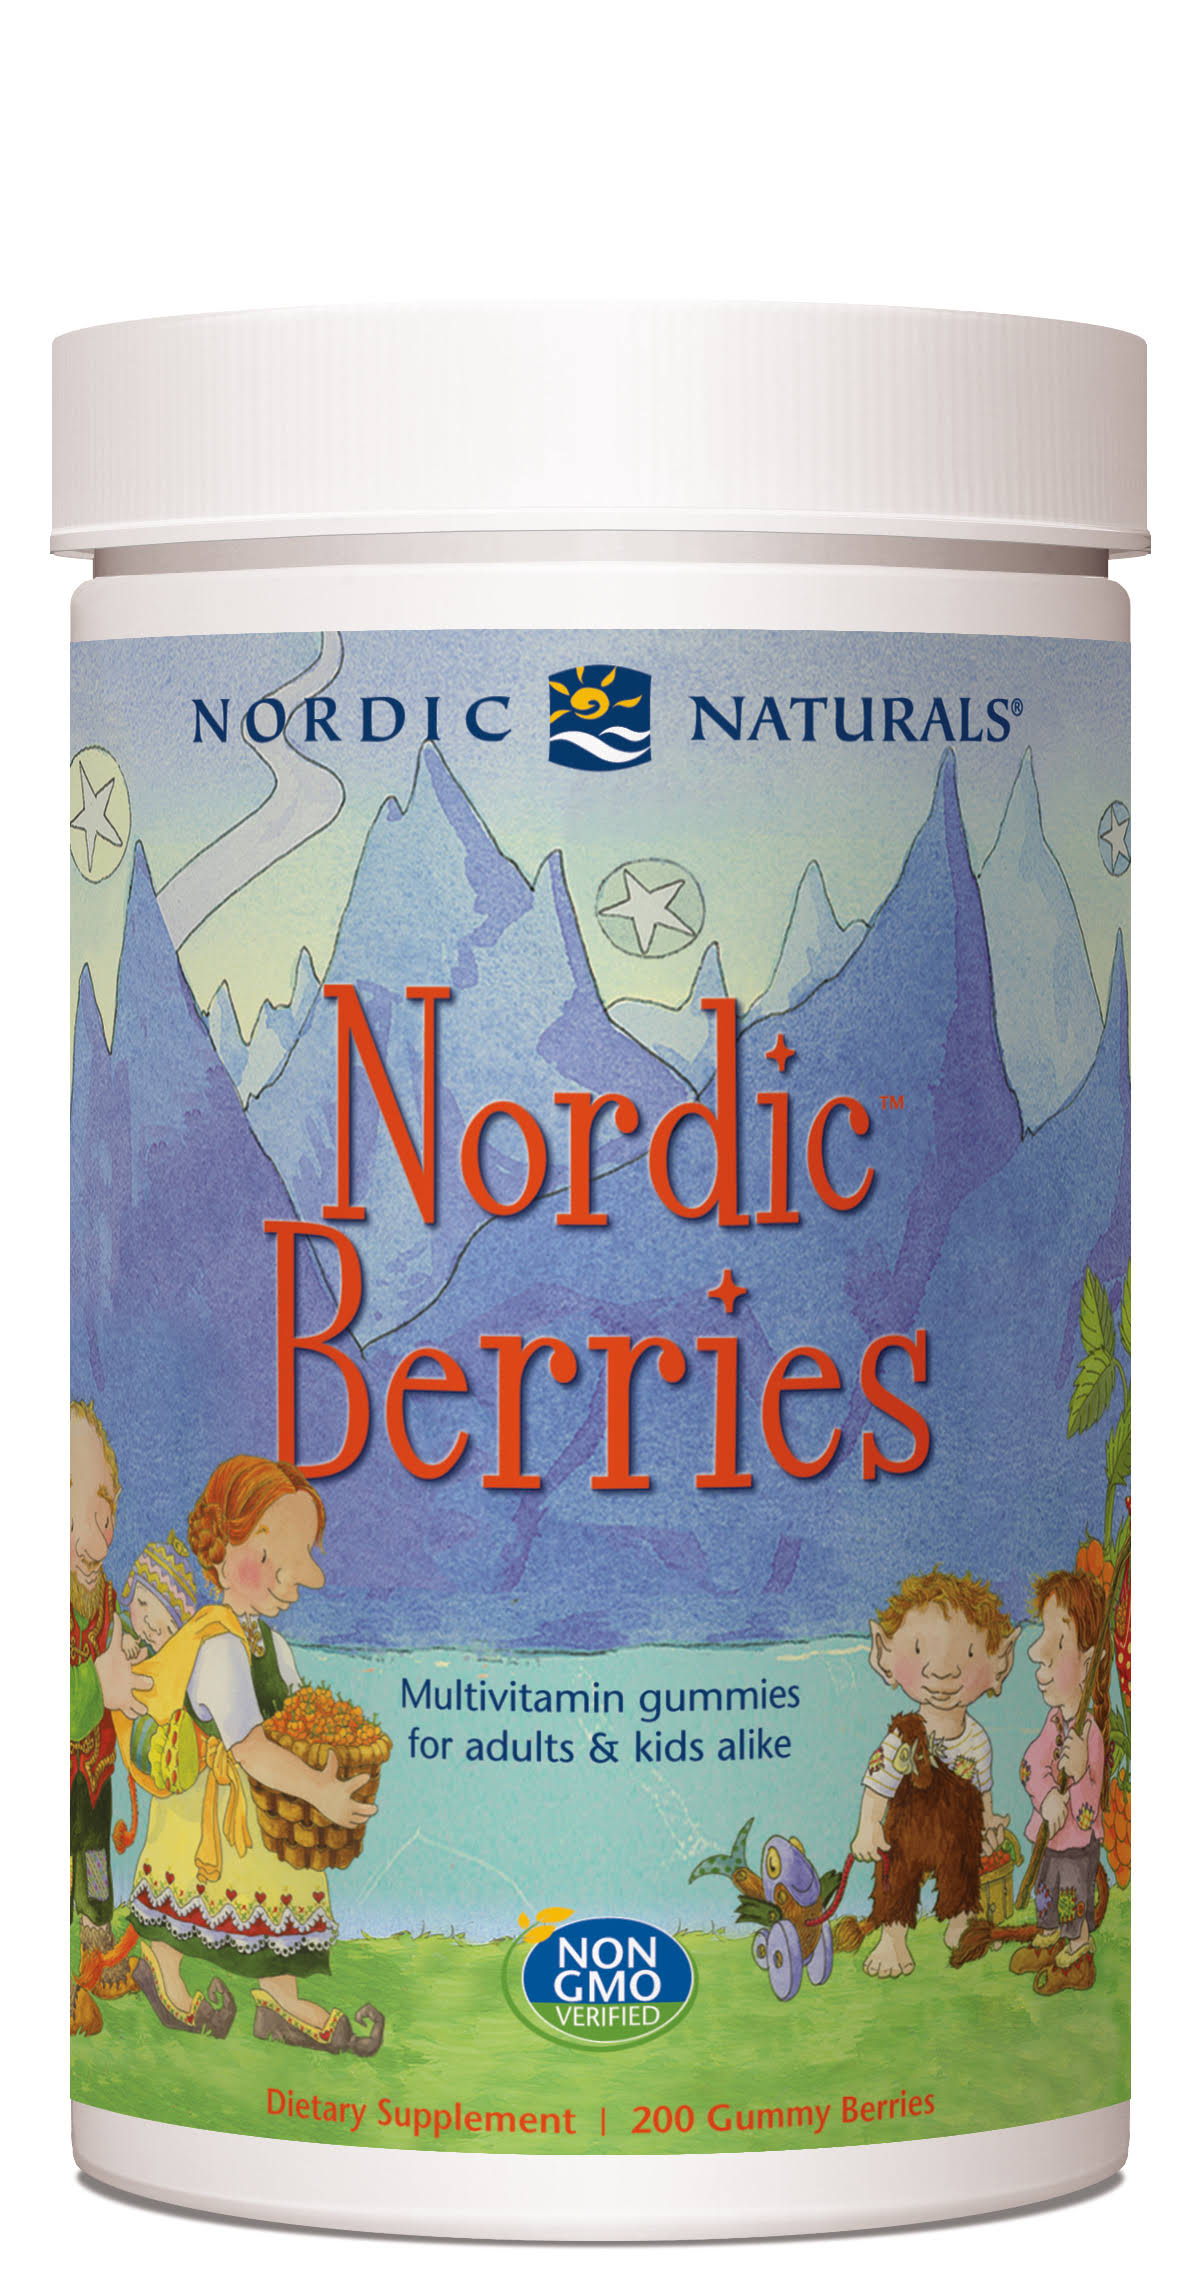 Nordic Naturals Adults and Kids Nutritional Supplement - Berries, 200 Count